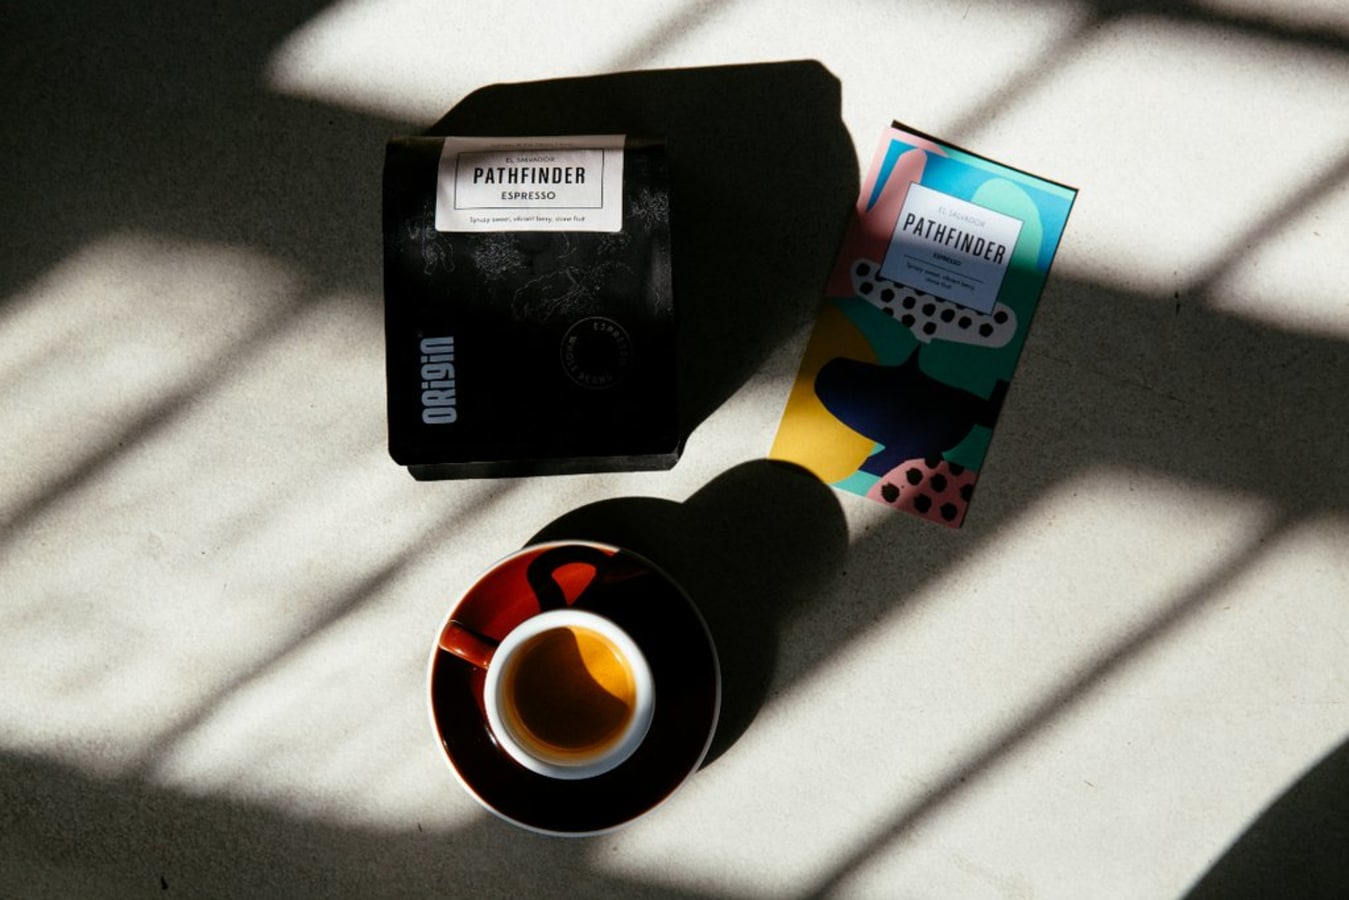 Origin coffee products including coffee and packaging